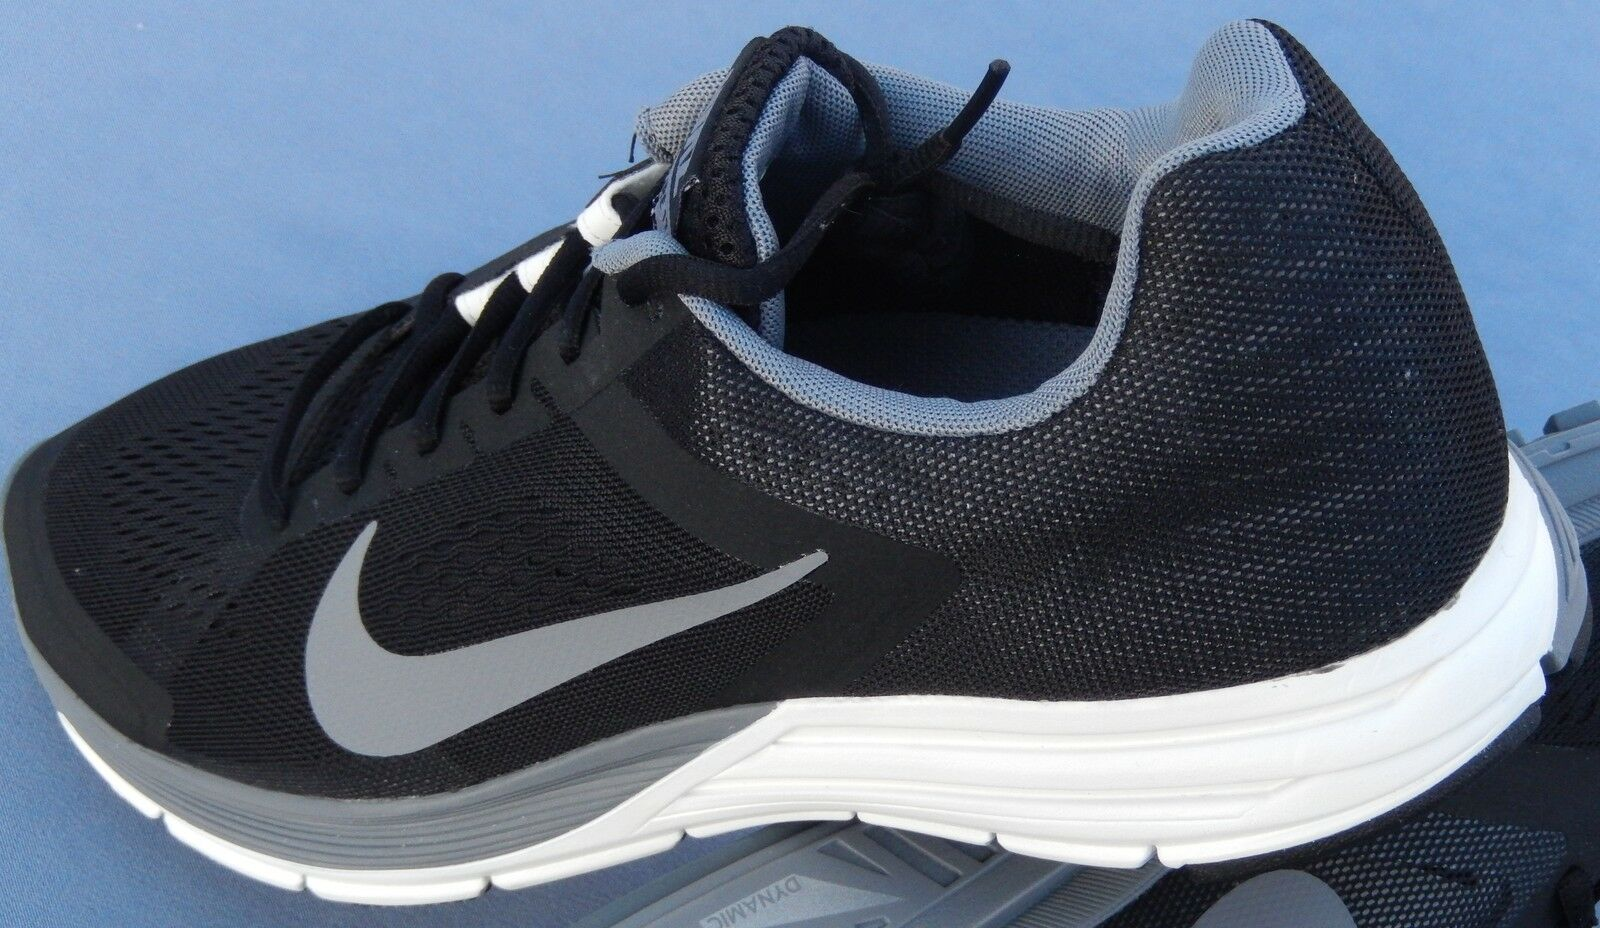 NIKE MENS ZOOM AIR STRUCTURE 17 SIZE 7 615587-010 BLACK SILVER GRAY